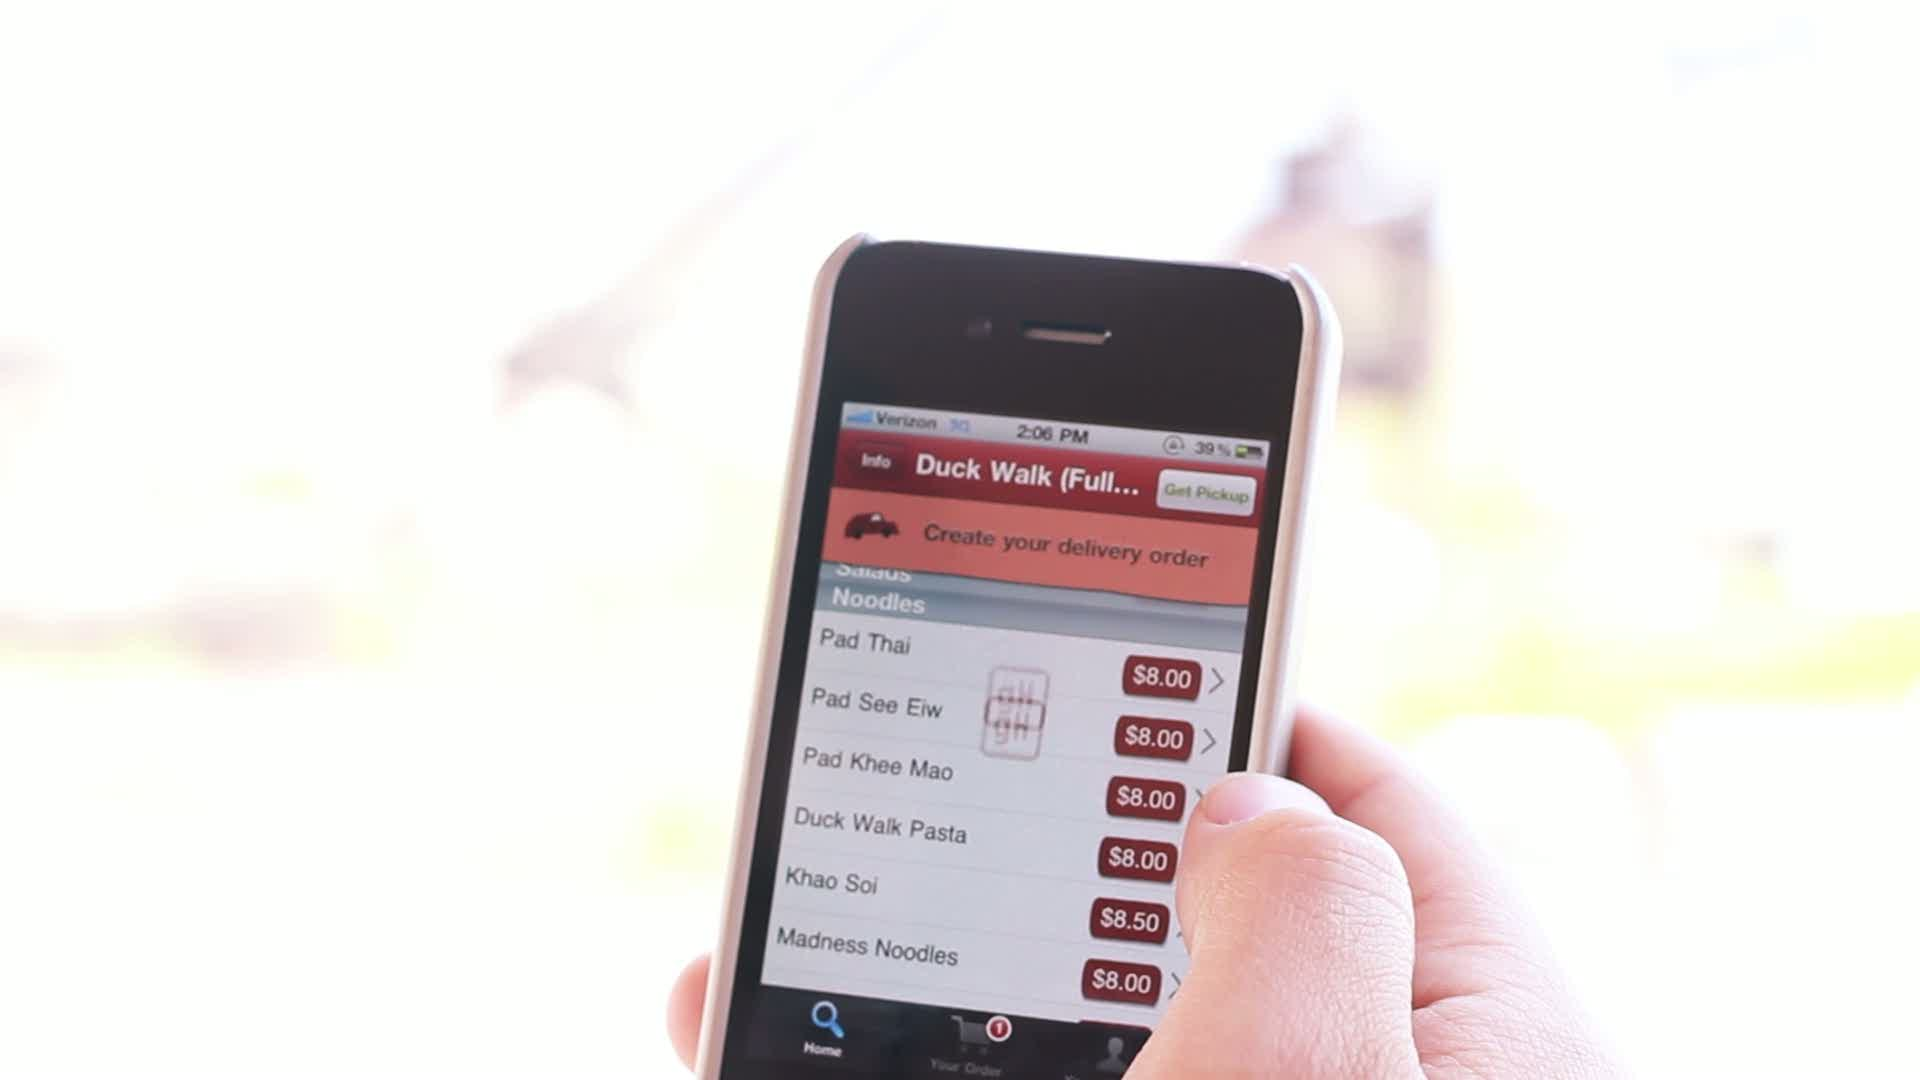 Introducing OrderHub, powered by GrubHub, the new in-restaurant technology that streamlines the ordering process.